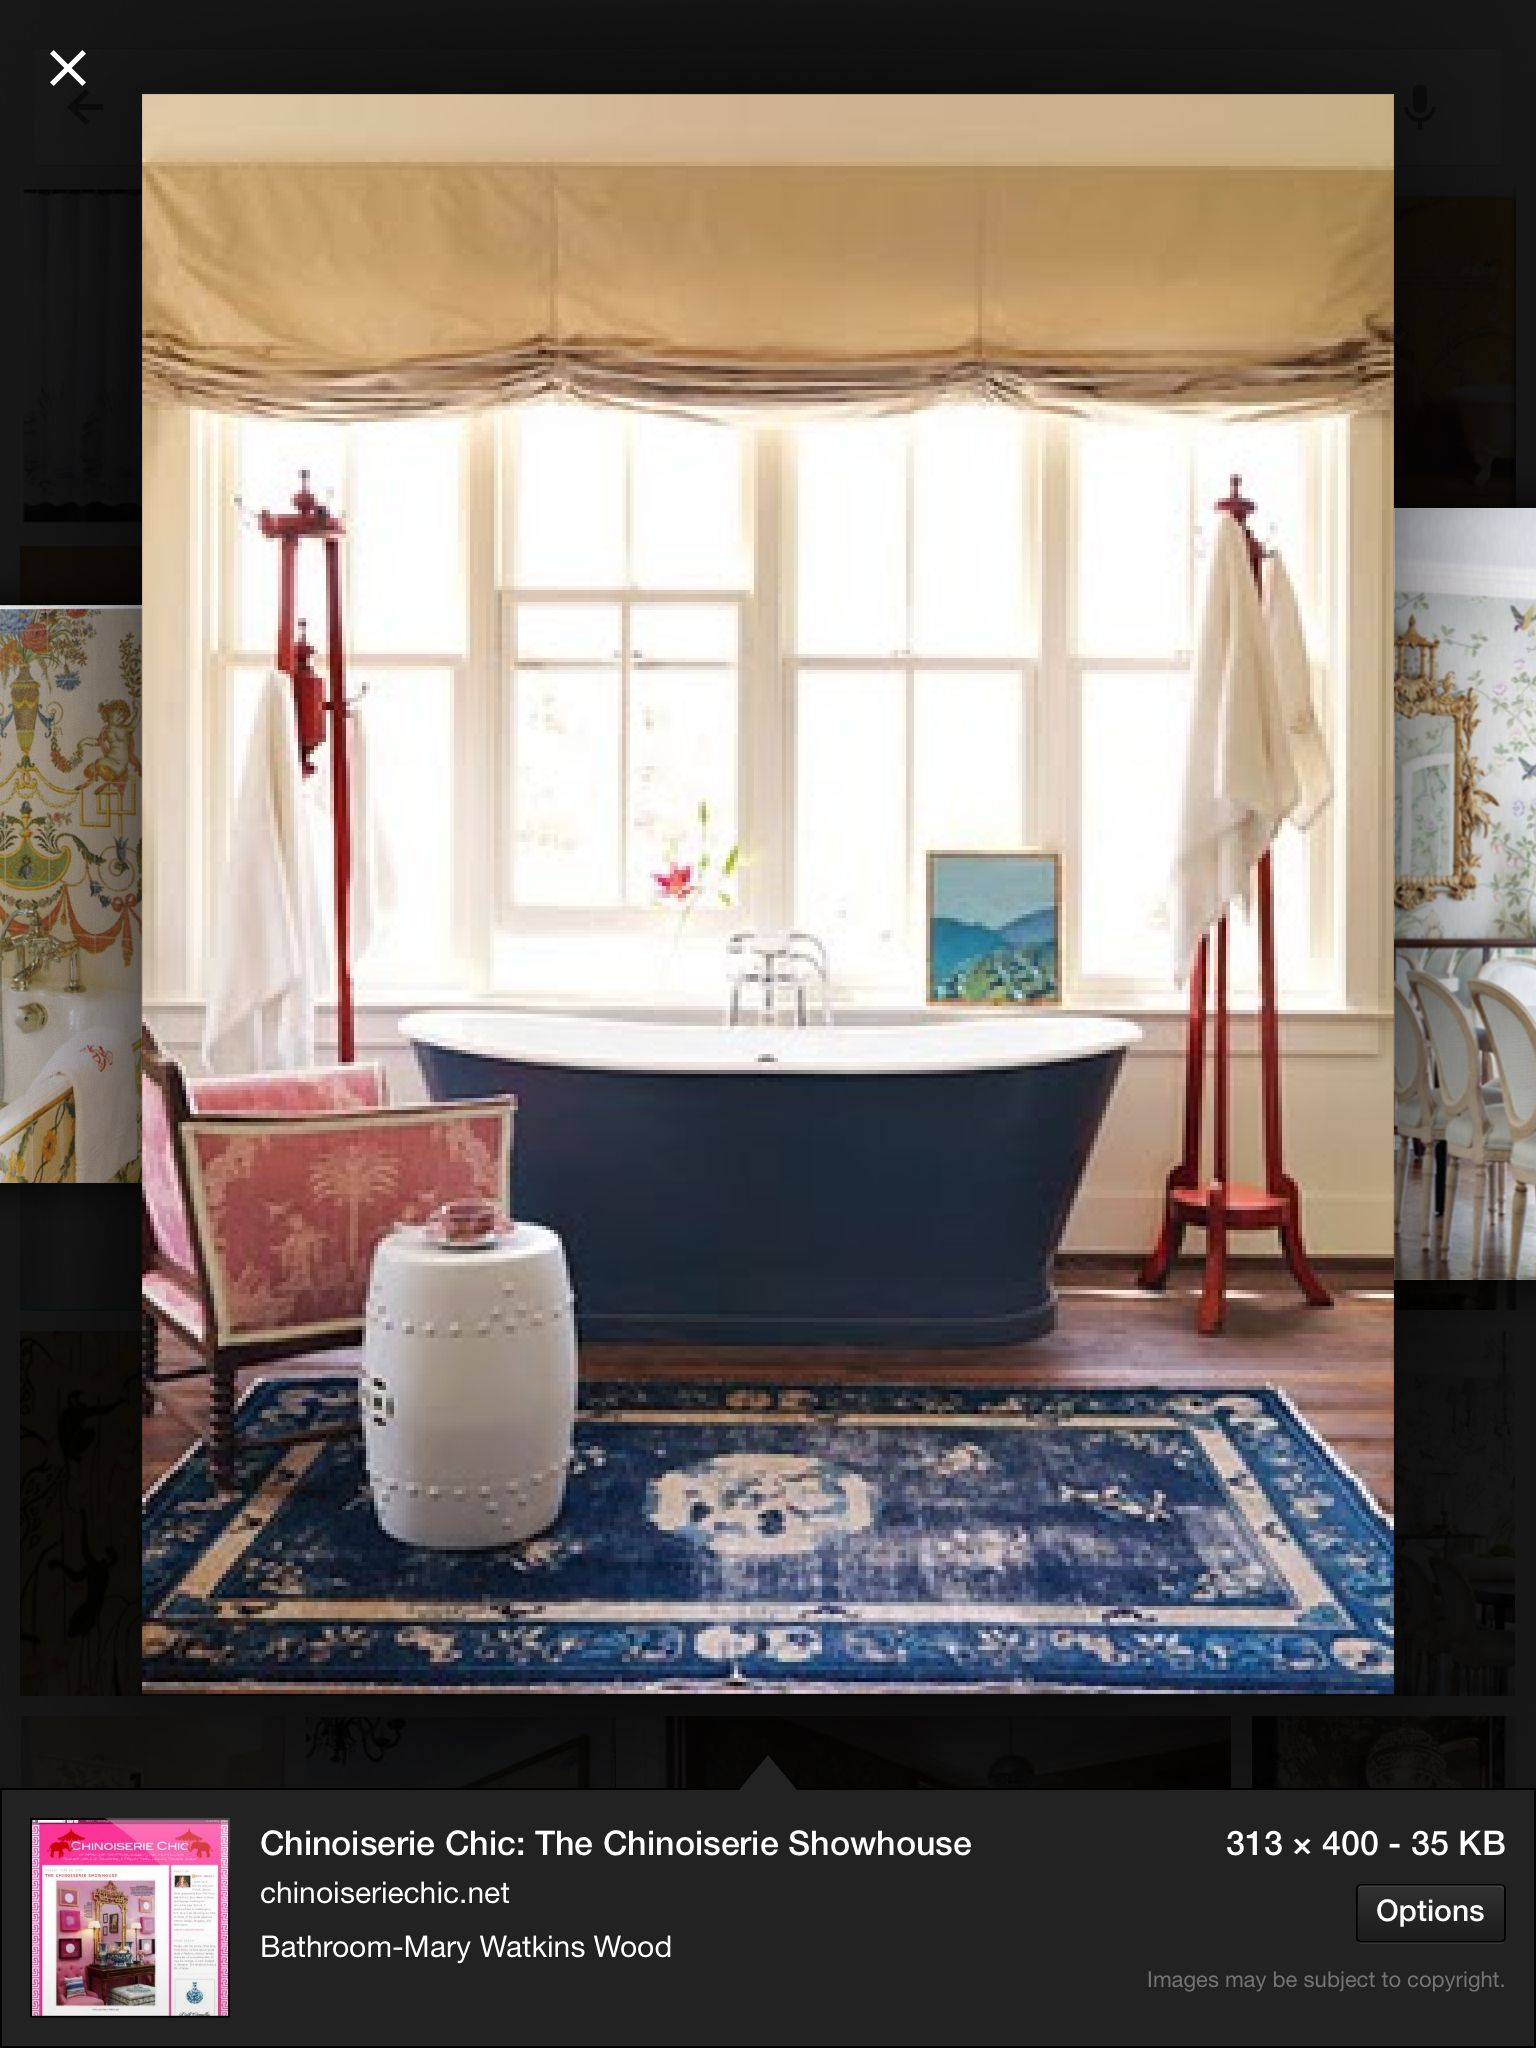 Chinoiserie bathroom - if only!